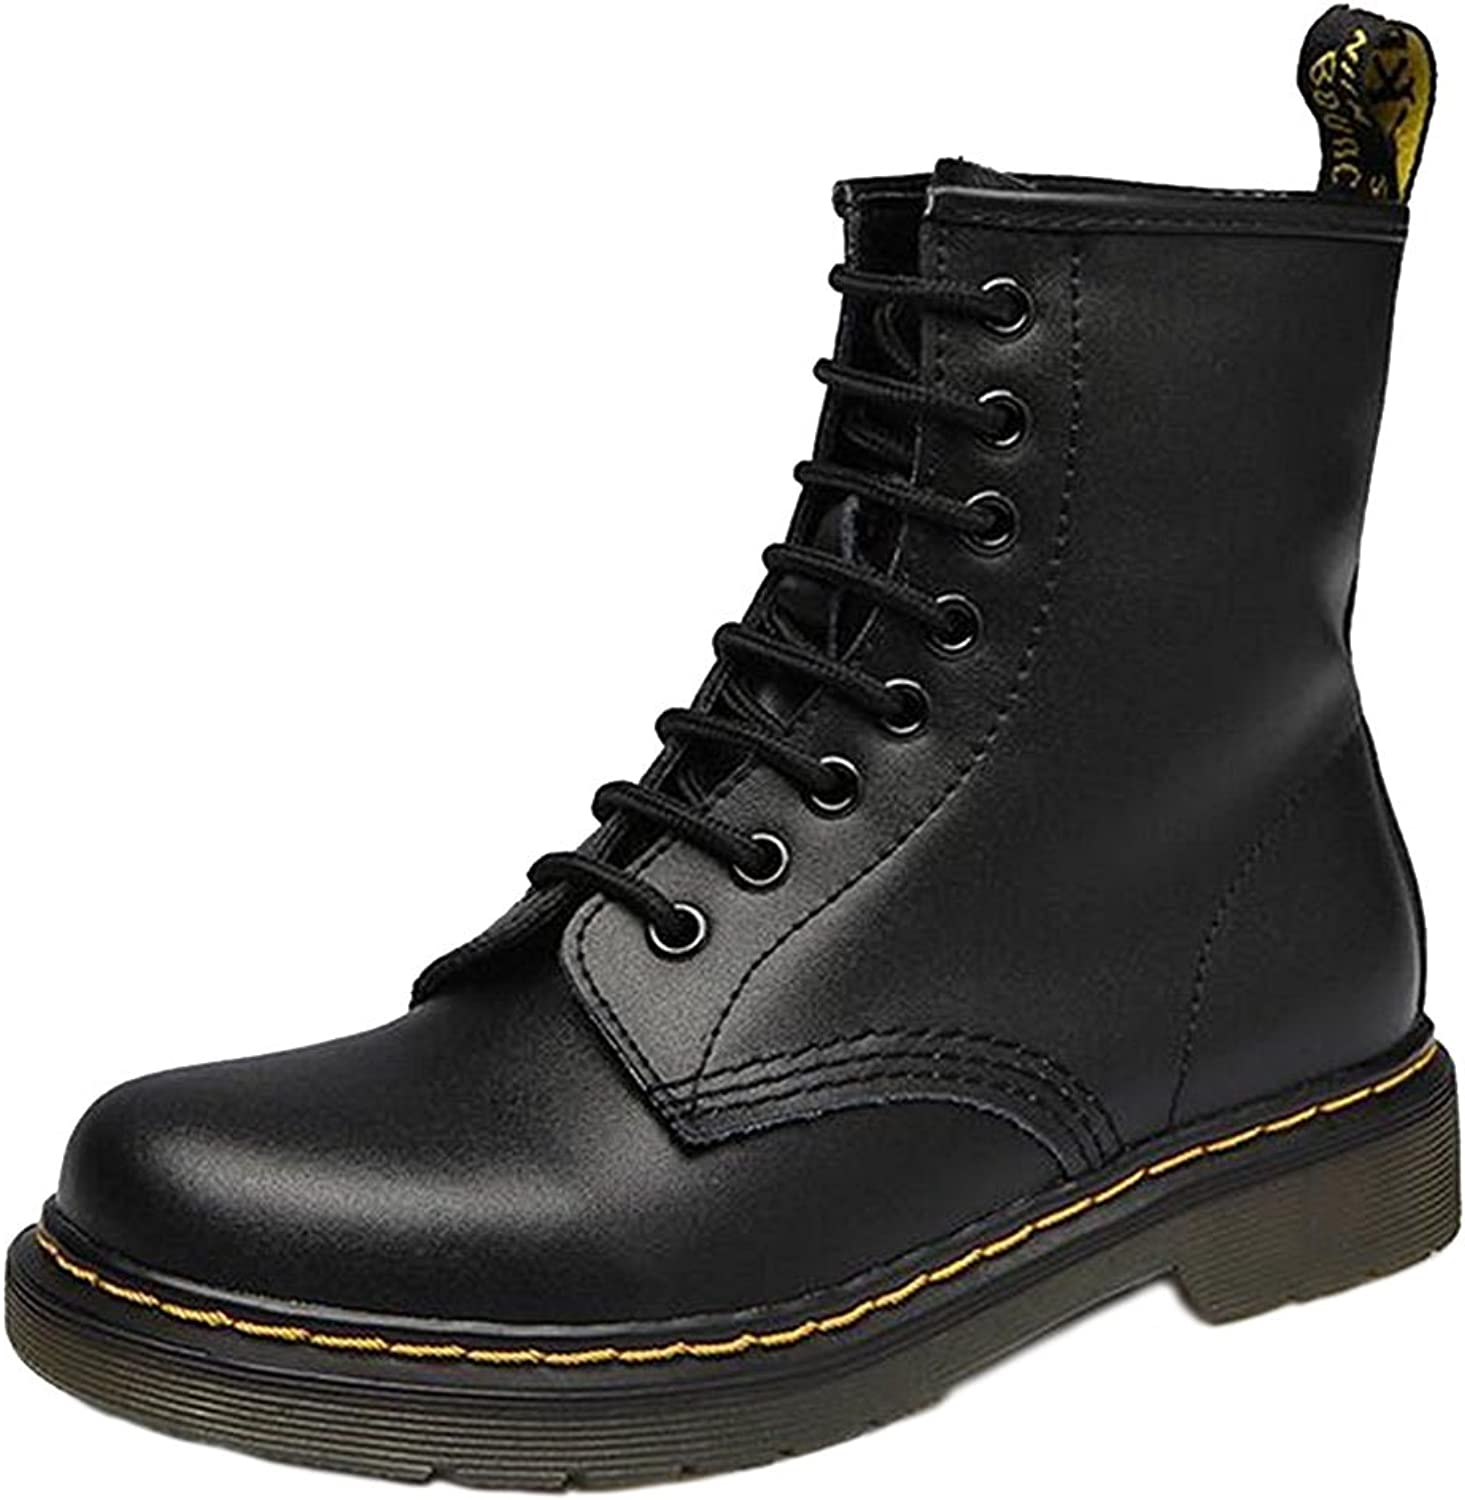 DADAWEN Unisex Men's Women's Lace Up Middle Ankle Boots with Two Choices(No Fur for Fall or Fur for Winter)